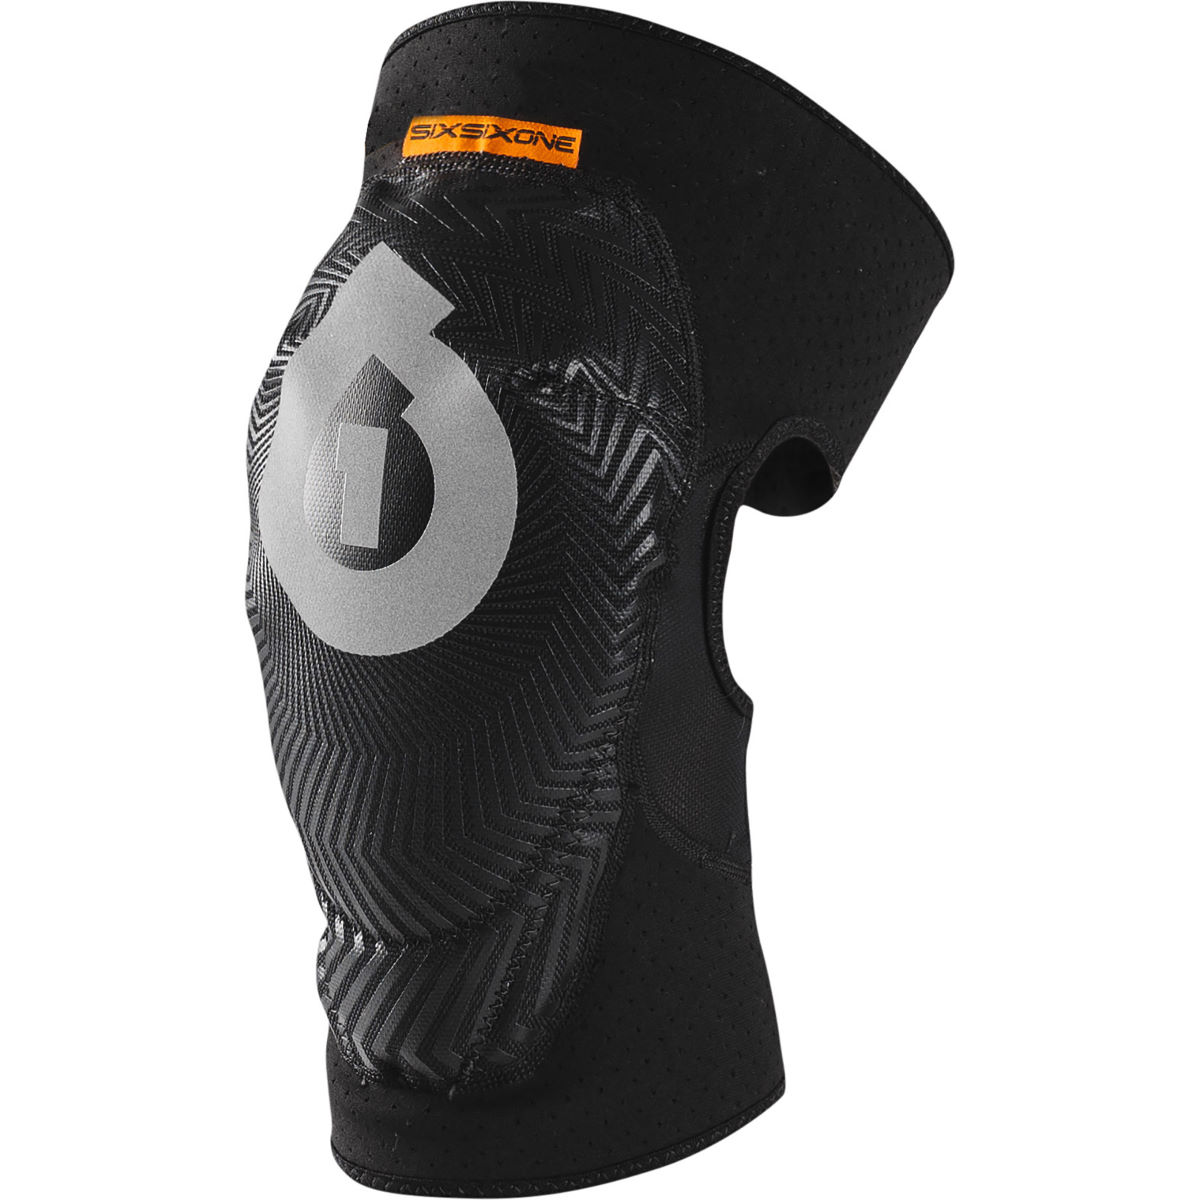 SixSixOne Comp AM Knee Guards - Rodilleras